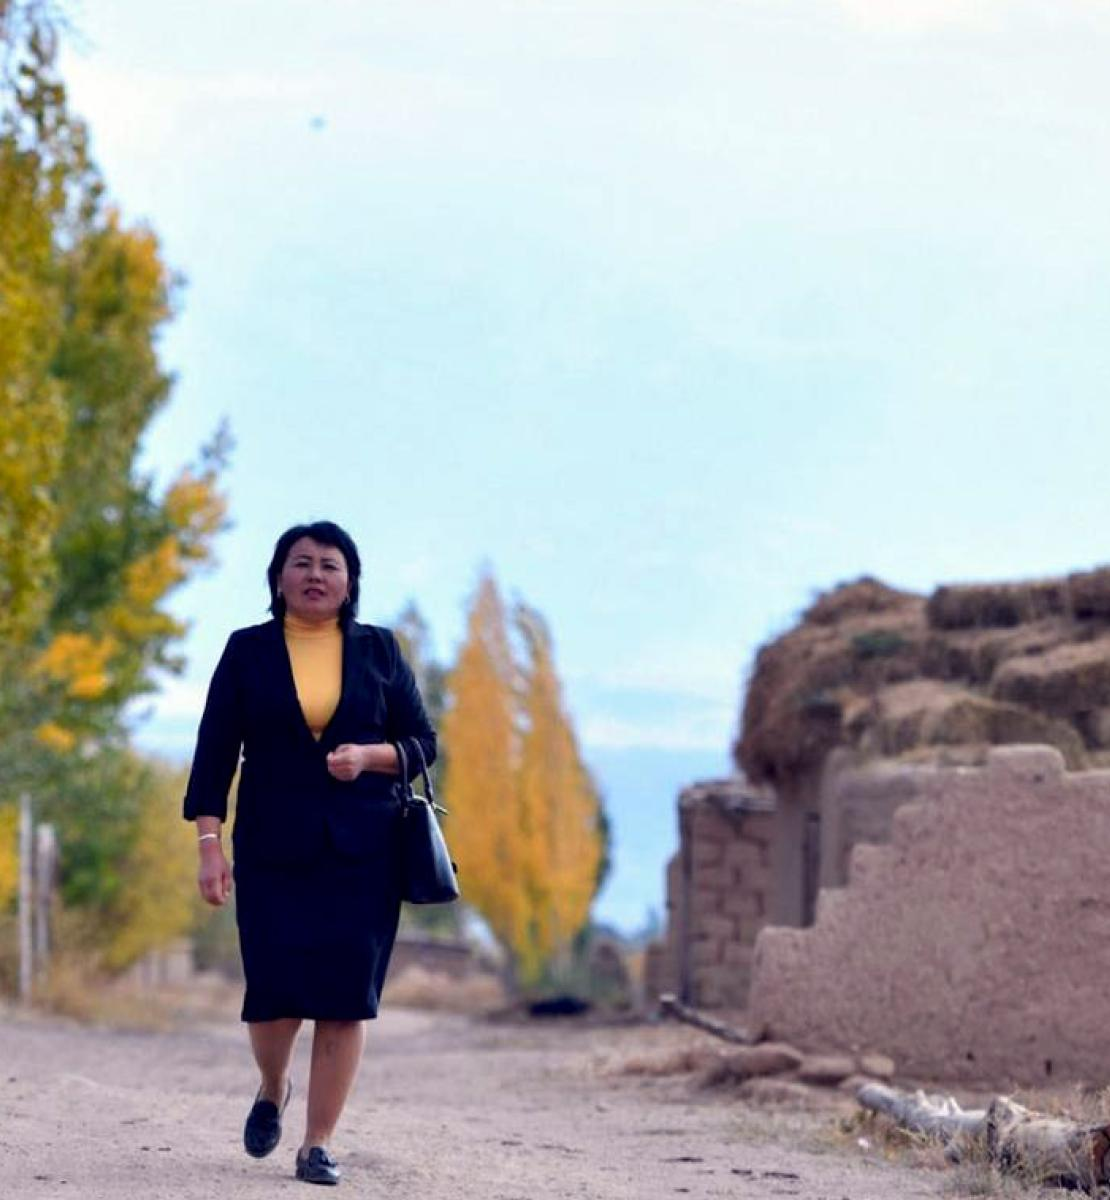 A woman in a black suit and yellow shirt walks proudly down a road towards the direction of the camera.